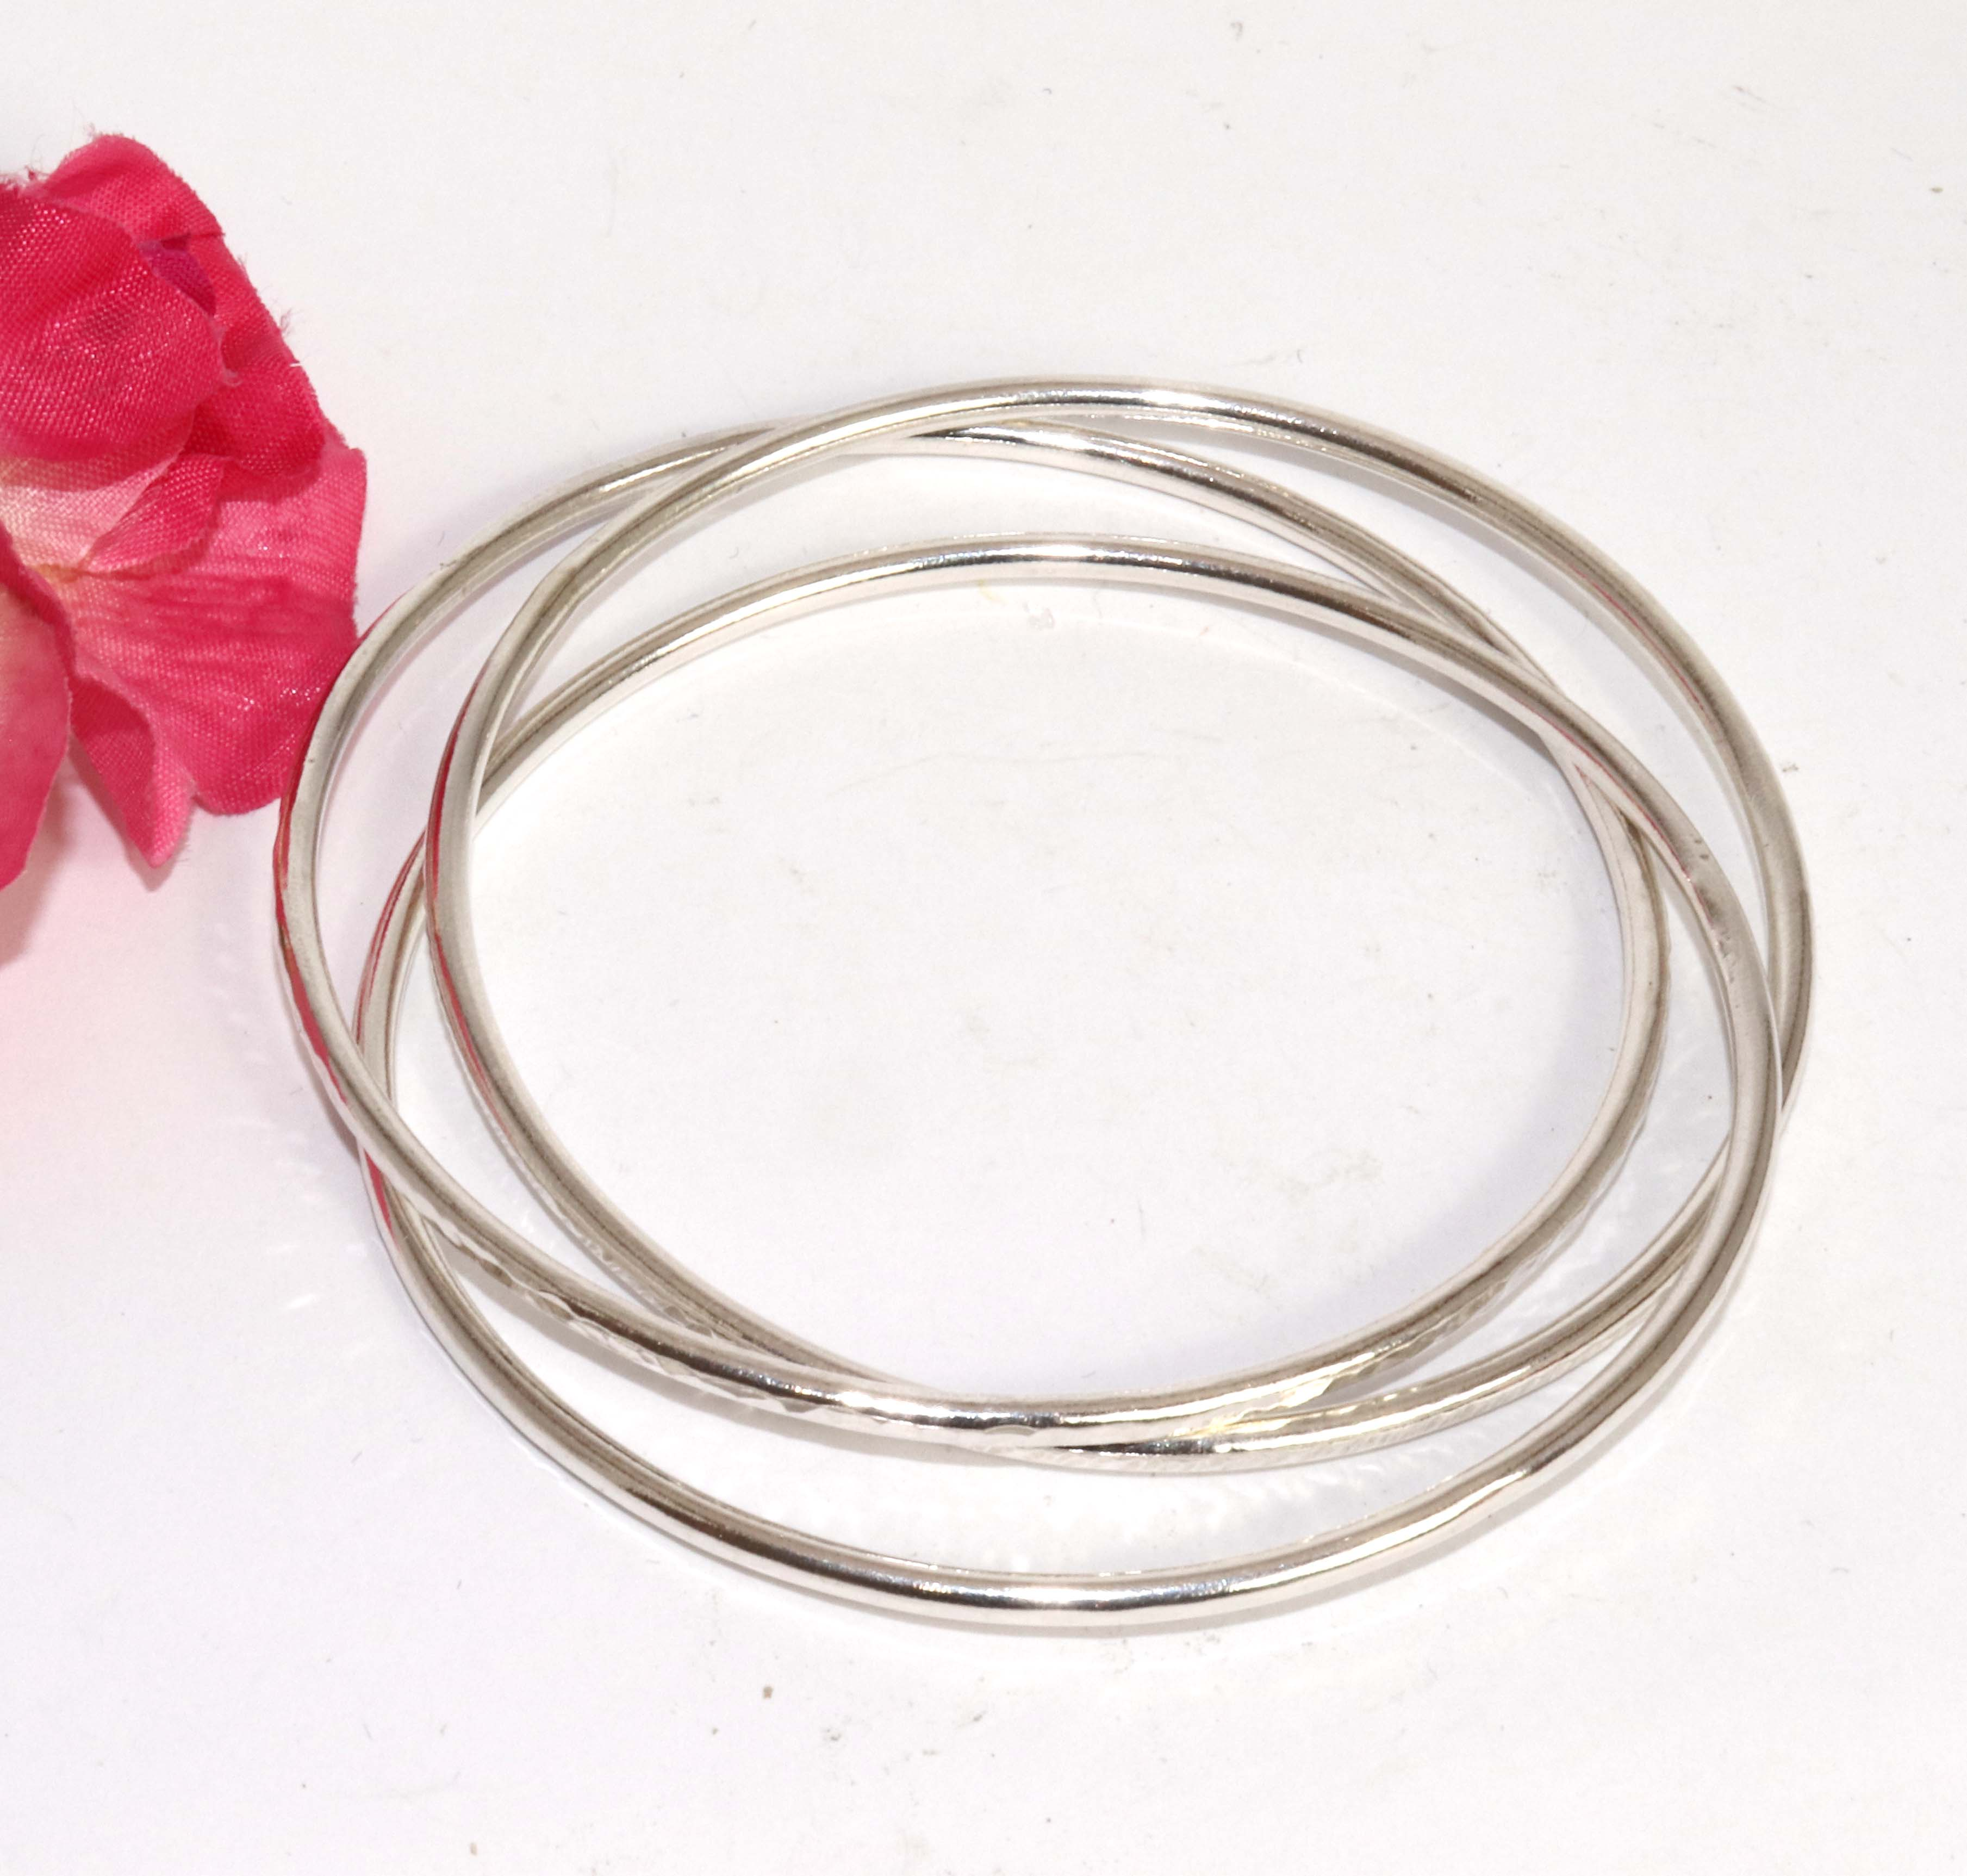 Triple Russian Wedding Ring Style Bangle